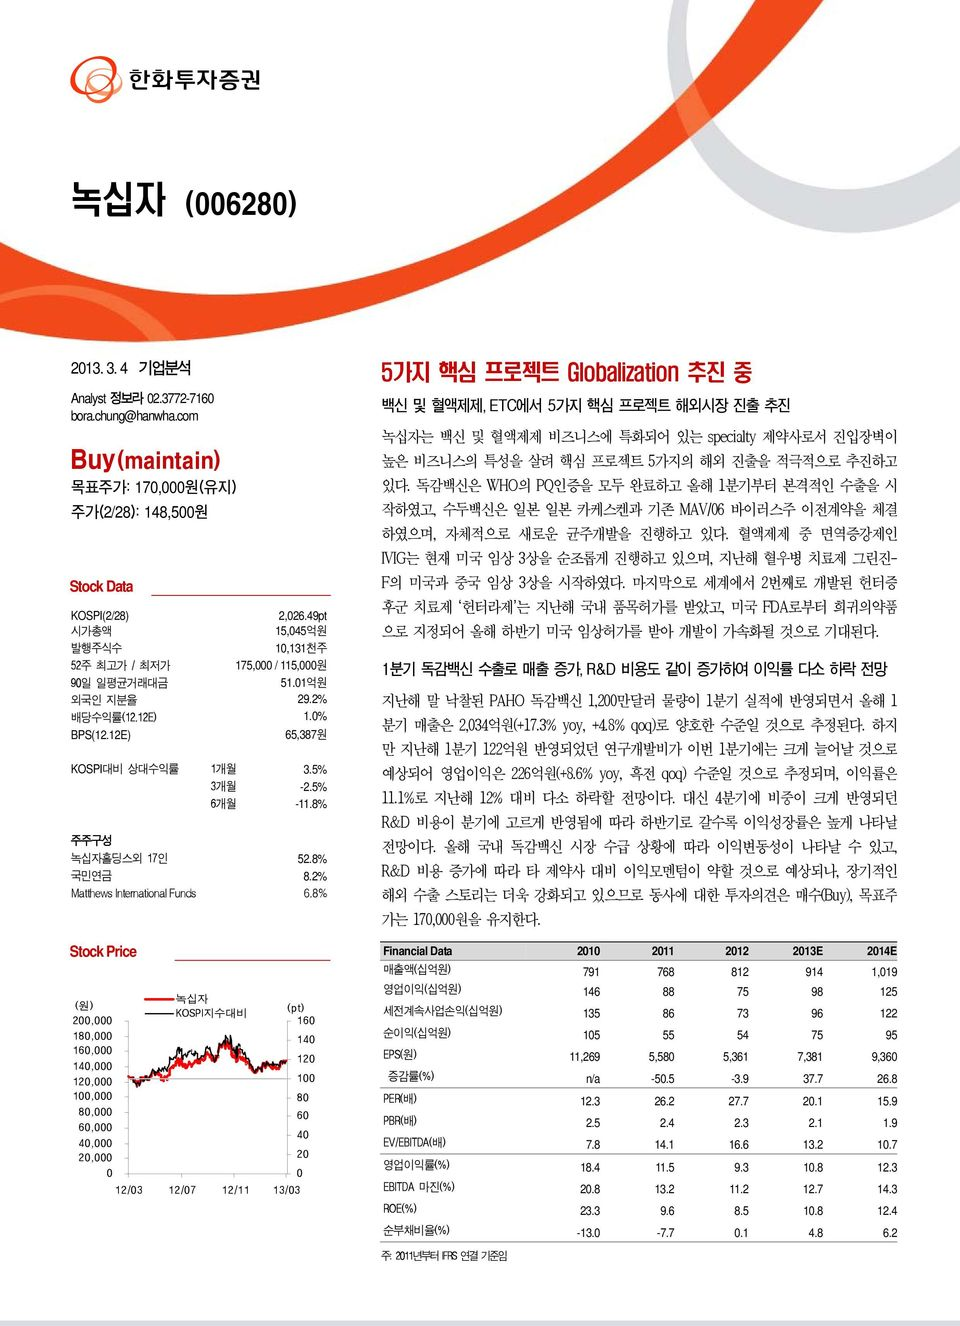 8% 국민연금 8.2% Matthews International Funds 6.